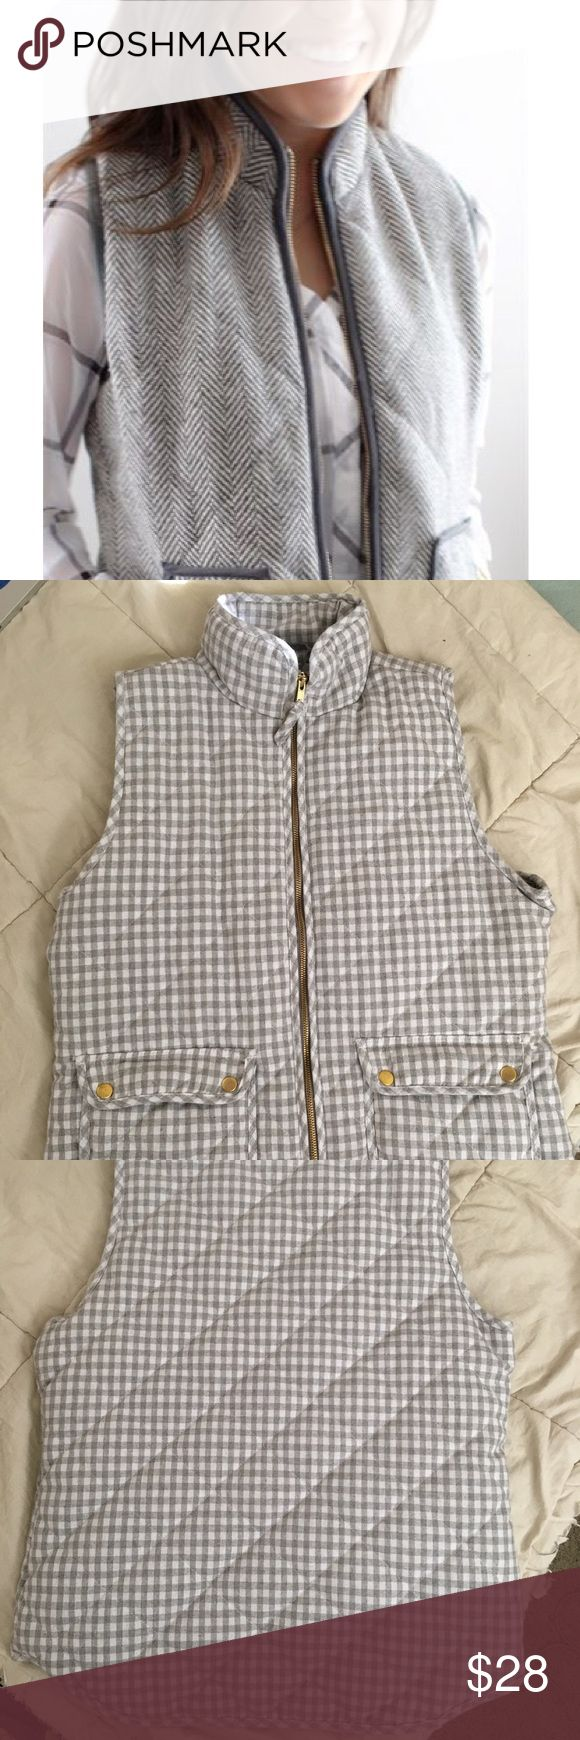 Selling this Quilted Checkered Vest on Poshmark! My username is: mersinamarie. #shopmycloset #poshmark #fashion #shopping #style #forsale #Francesca's Collections #Jackets & Blazers